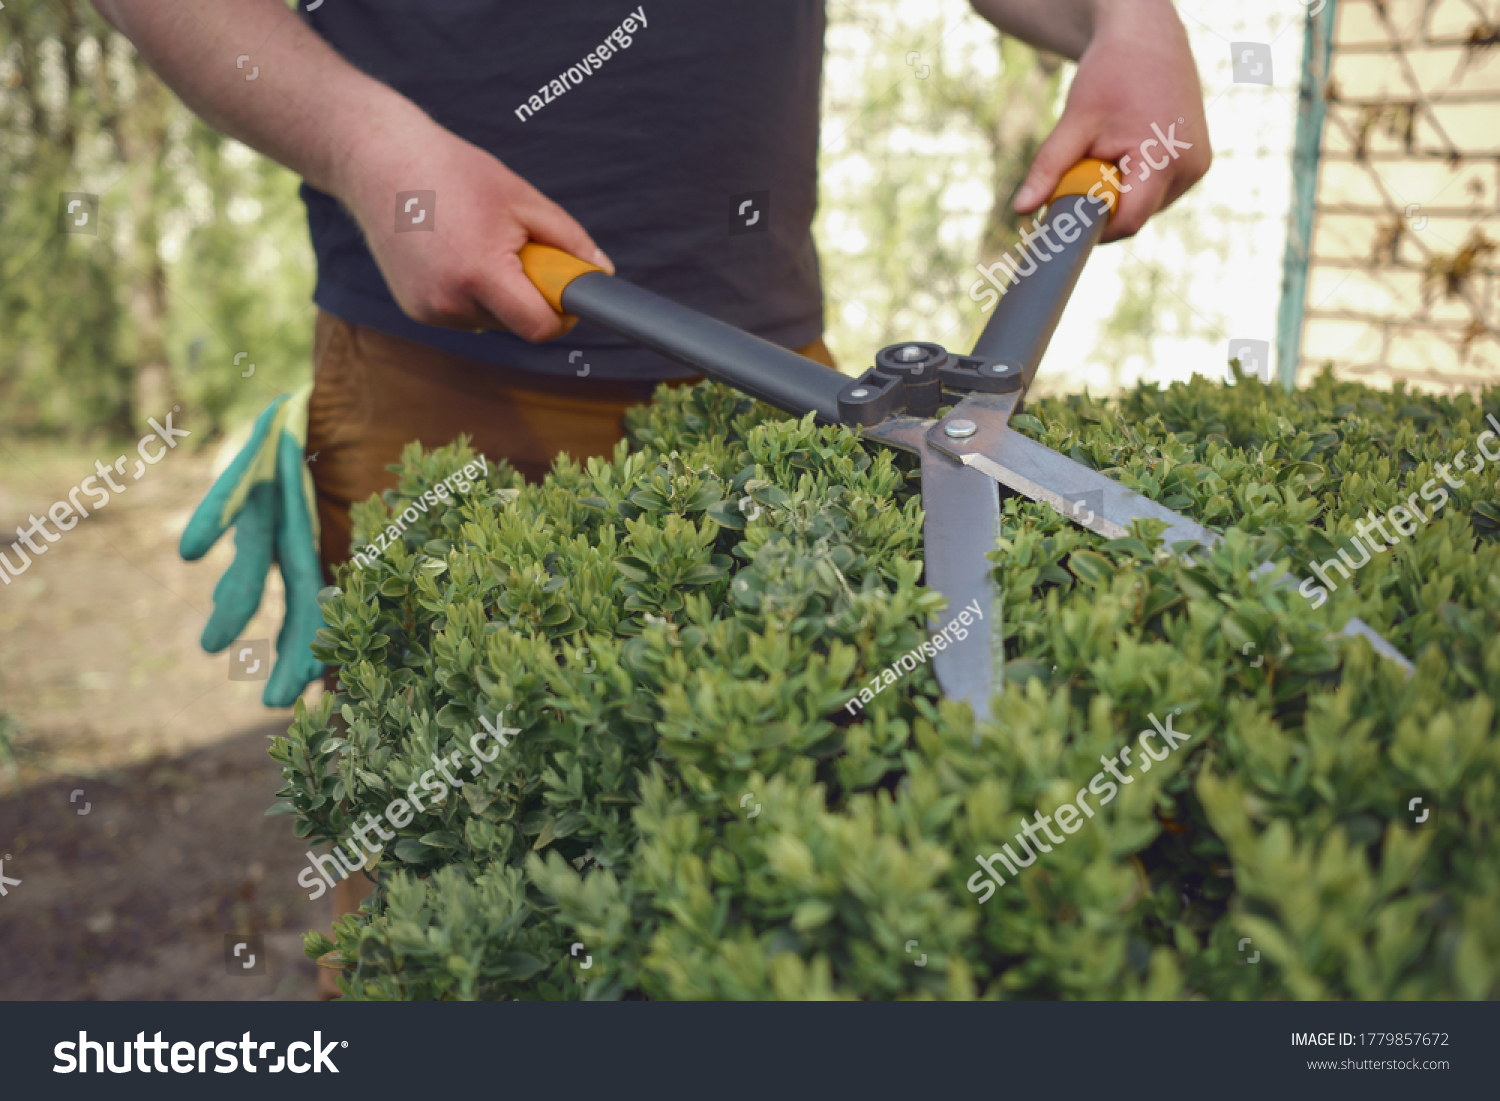 Man with bare hands is trimming a green shrub using hedge shears on his backyard. Gloves are in his pocket. Professional pruning tool. Close up #1779857672